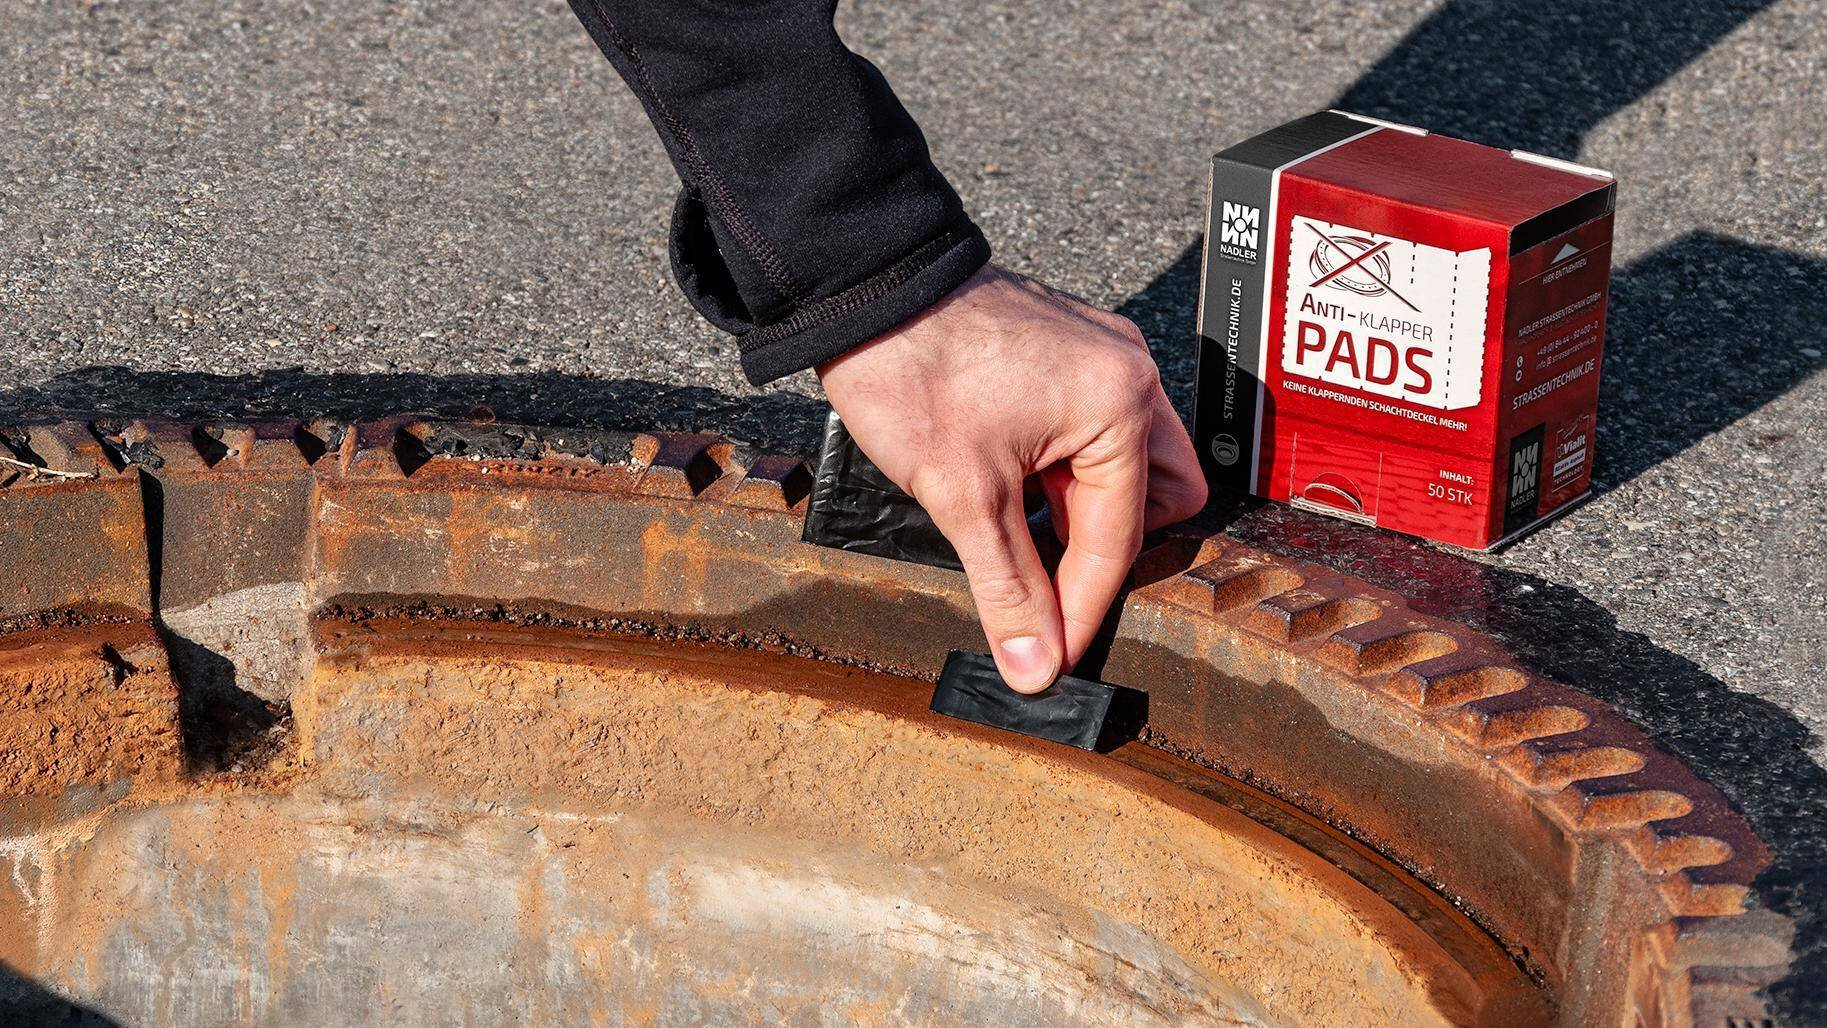 Gallery image 0 - Anti-rattle pads prevent rattling and the associated damage to manholes and hydrants.